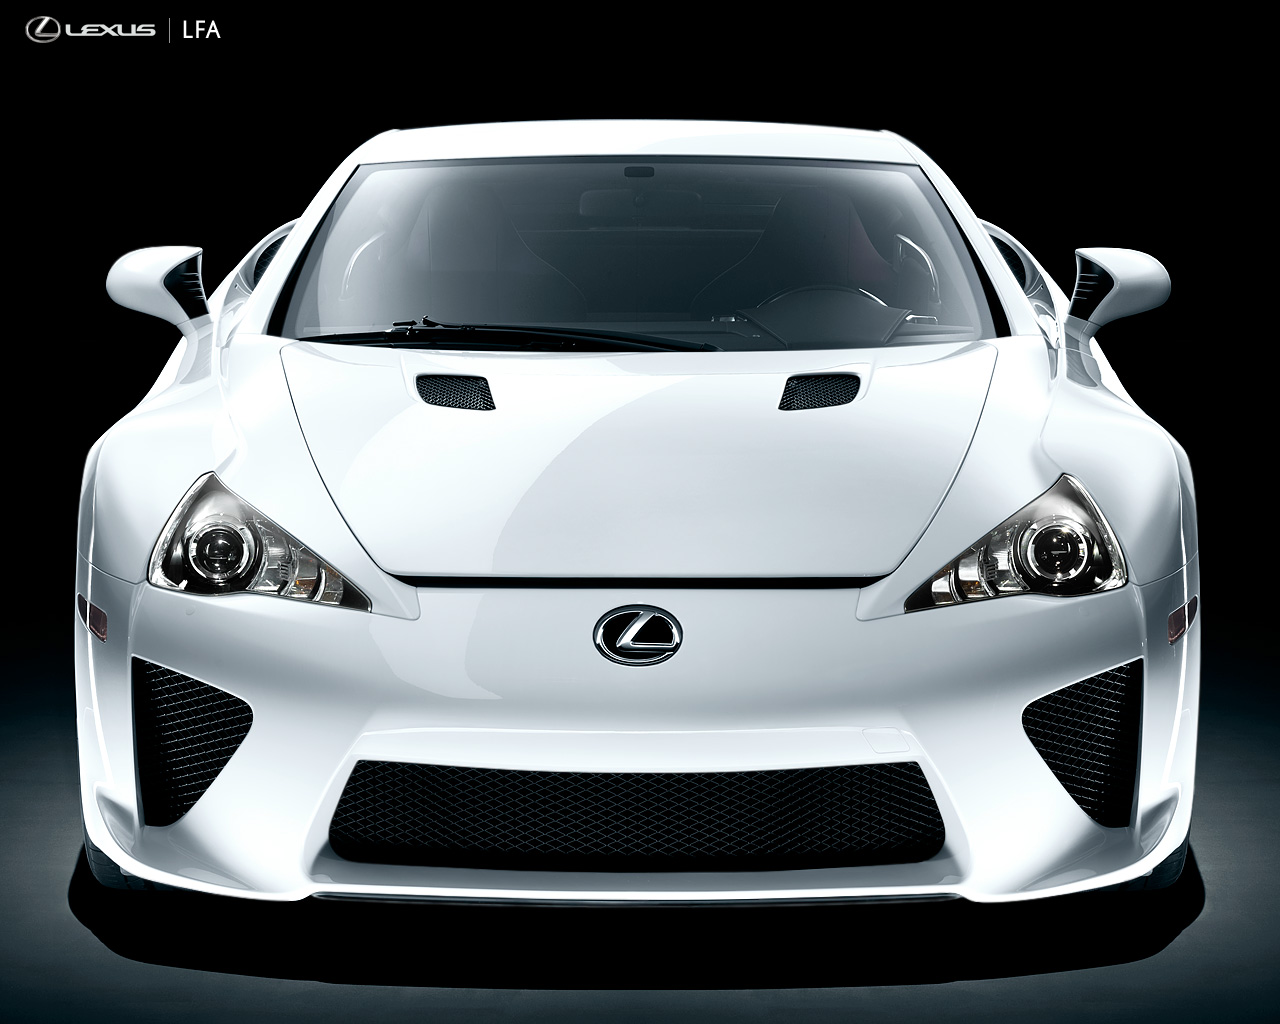 wallpapers lexus lfa - photo #36